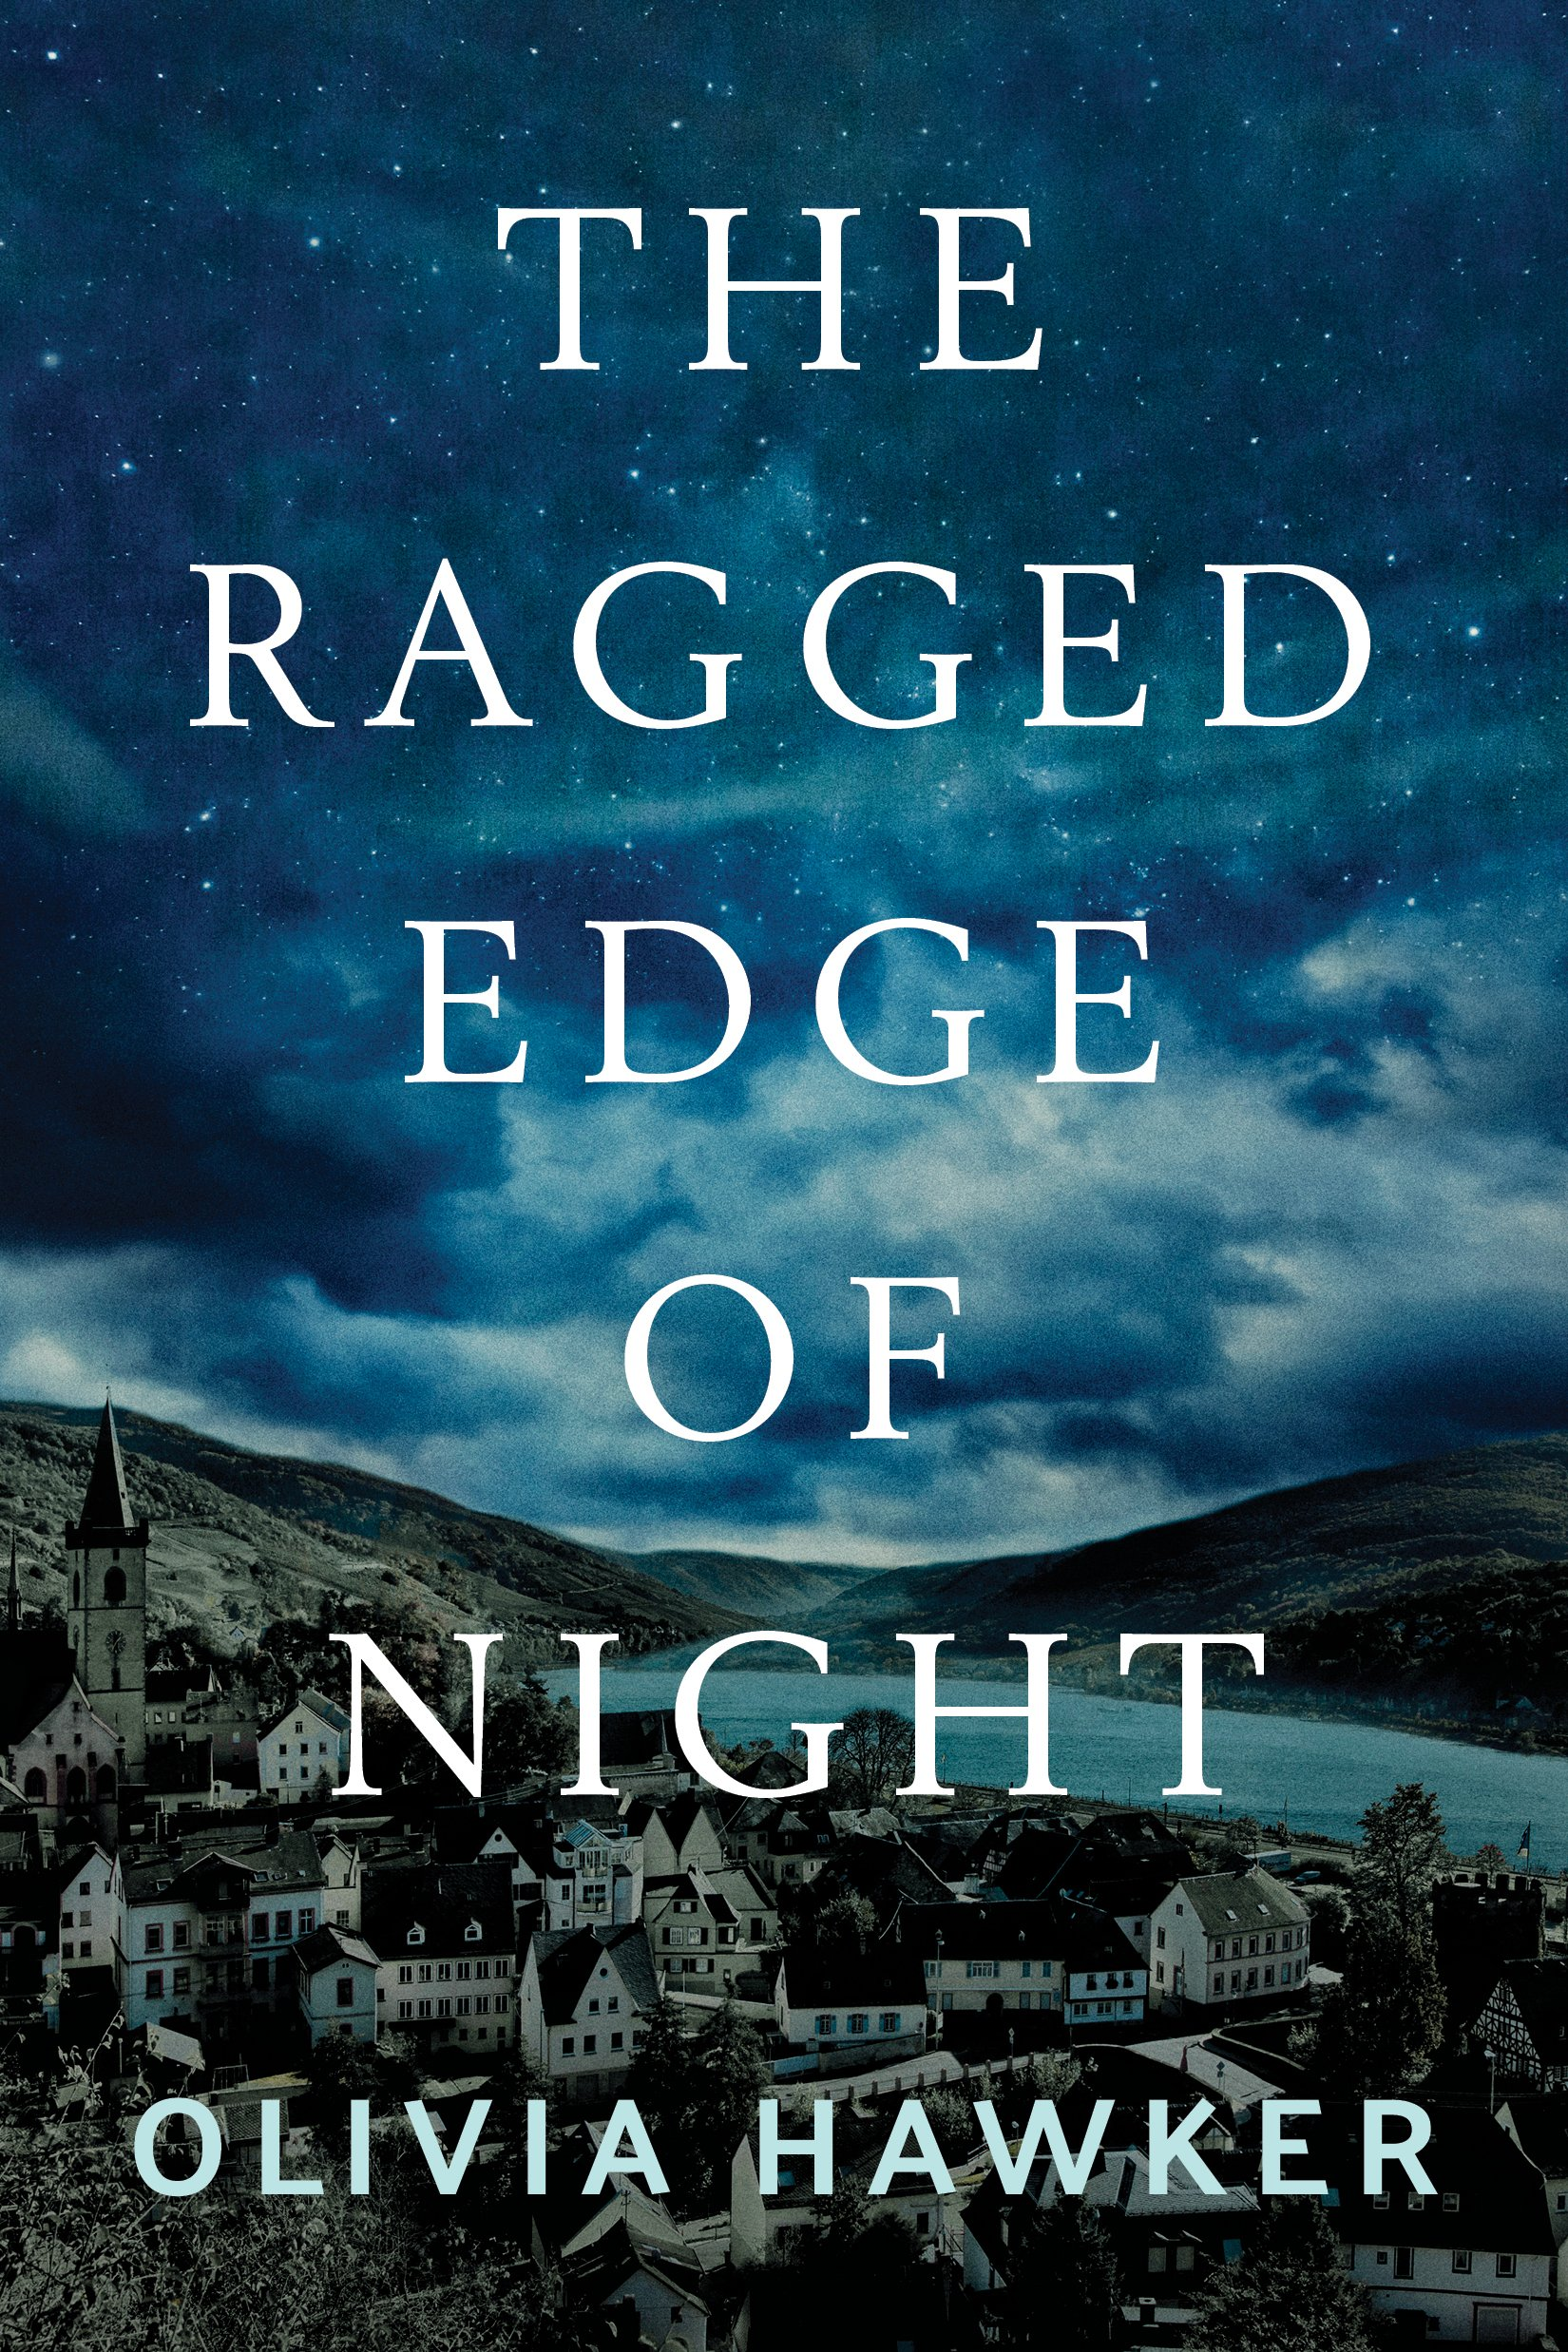 Amazon.com: The Ragged Edge of Night (9781503900905): Olivia Hawker: Books